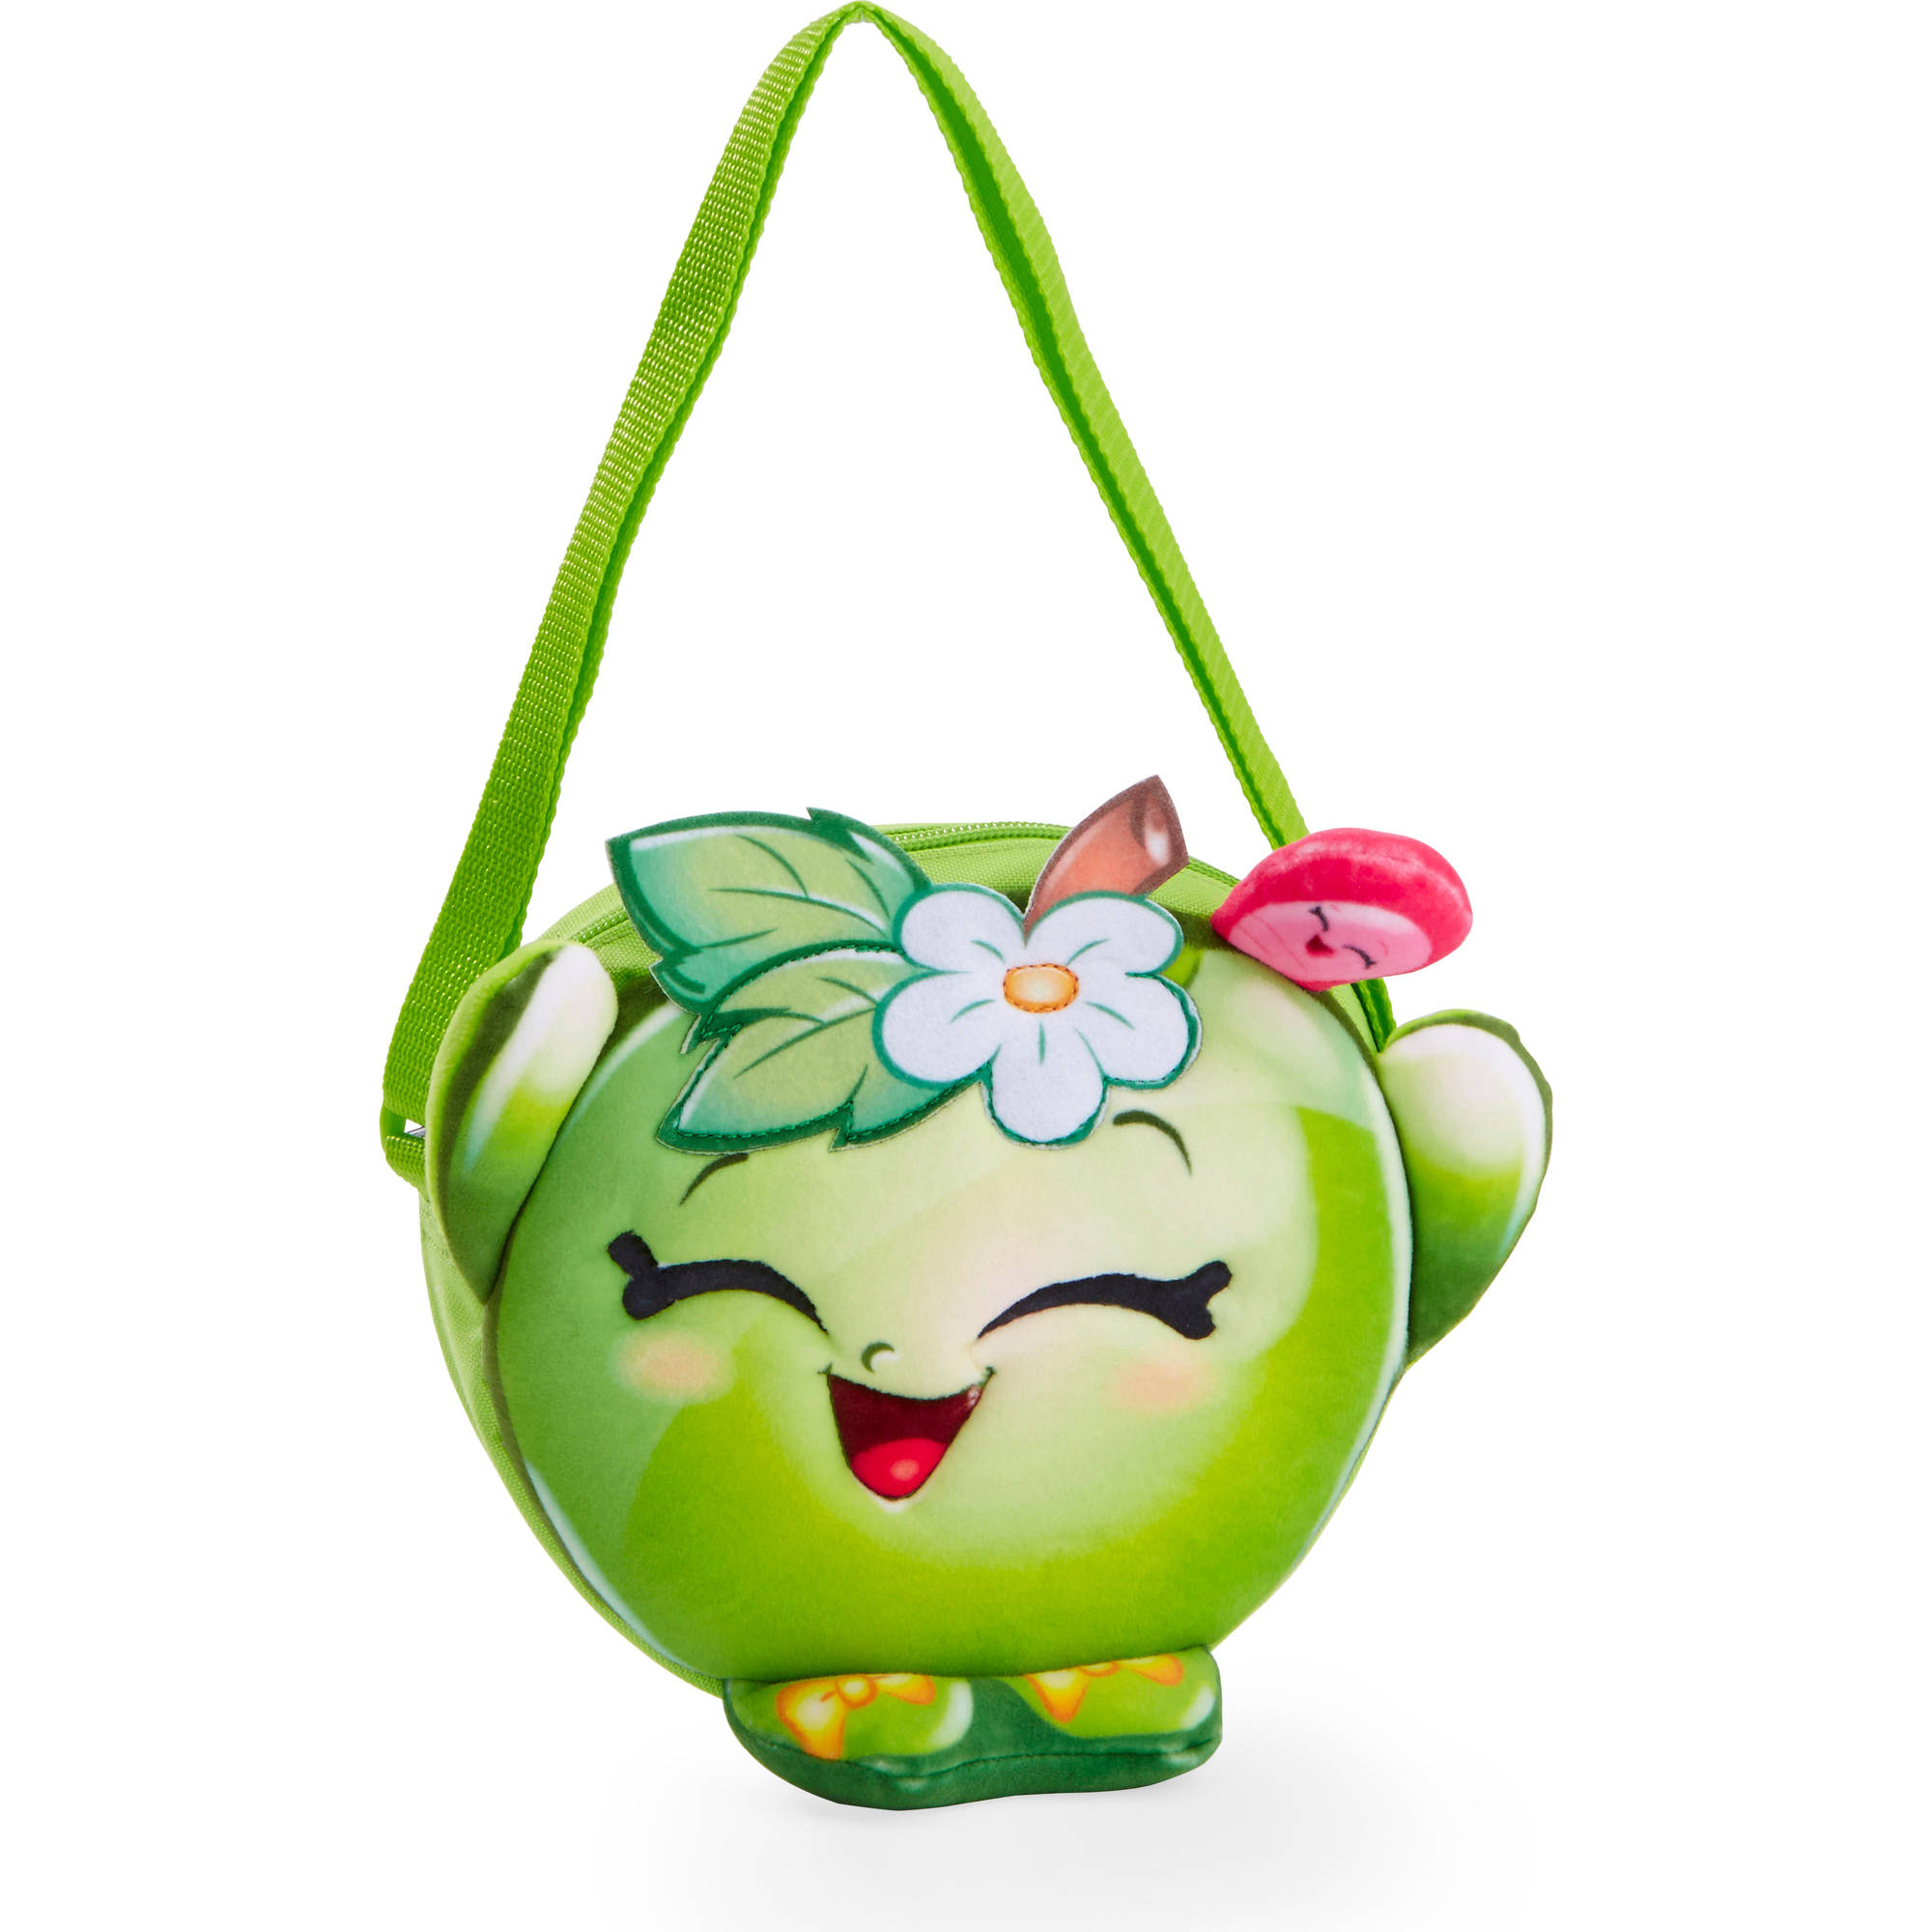 Shopkins Apple Crossbody Bag